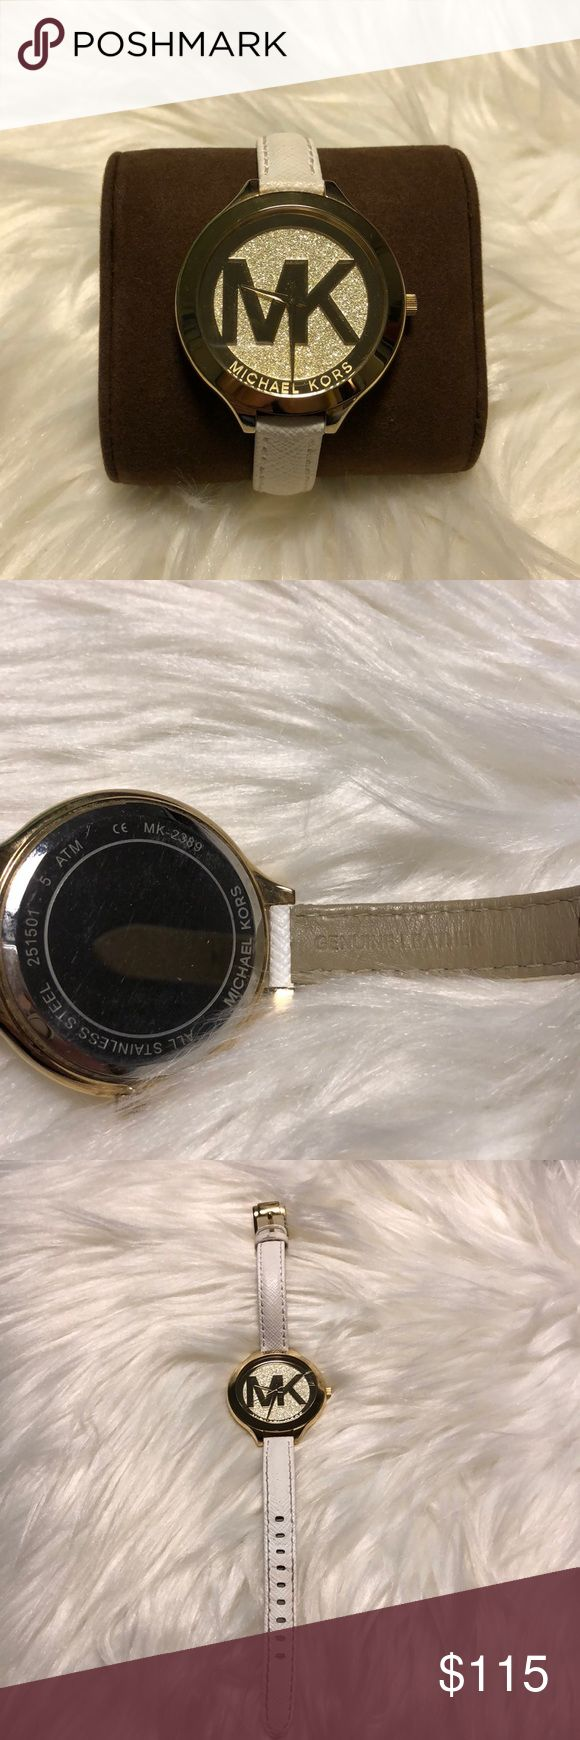 Michael Kors Dial Leather Strap Watch MK2389 Michael Kors Runway Champagne Dial White Leather Strap Women's Watch MK2389 - with a 42 Millimeters Yellow Gold Tone Stainless Steel case. Water resistant. Like new, only worn a handful of times! MICHAEL Michael Kors Accessories Watches